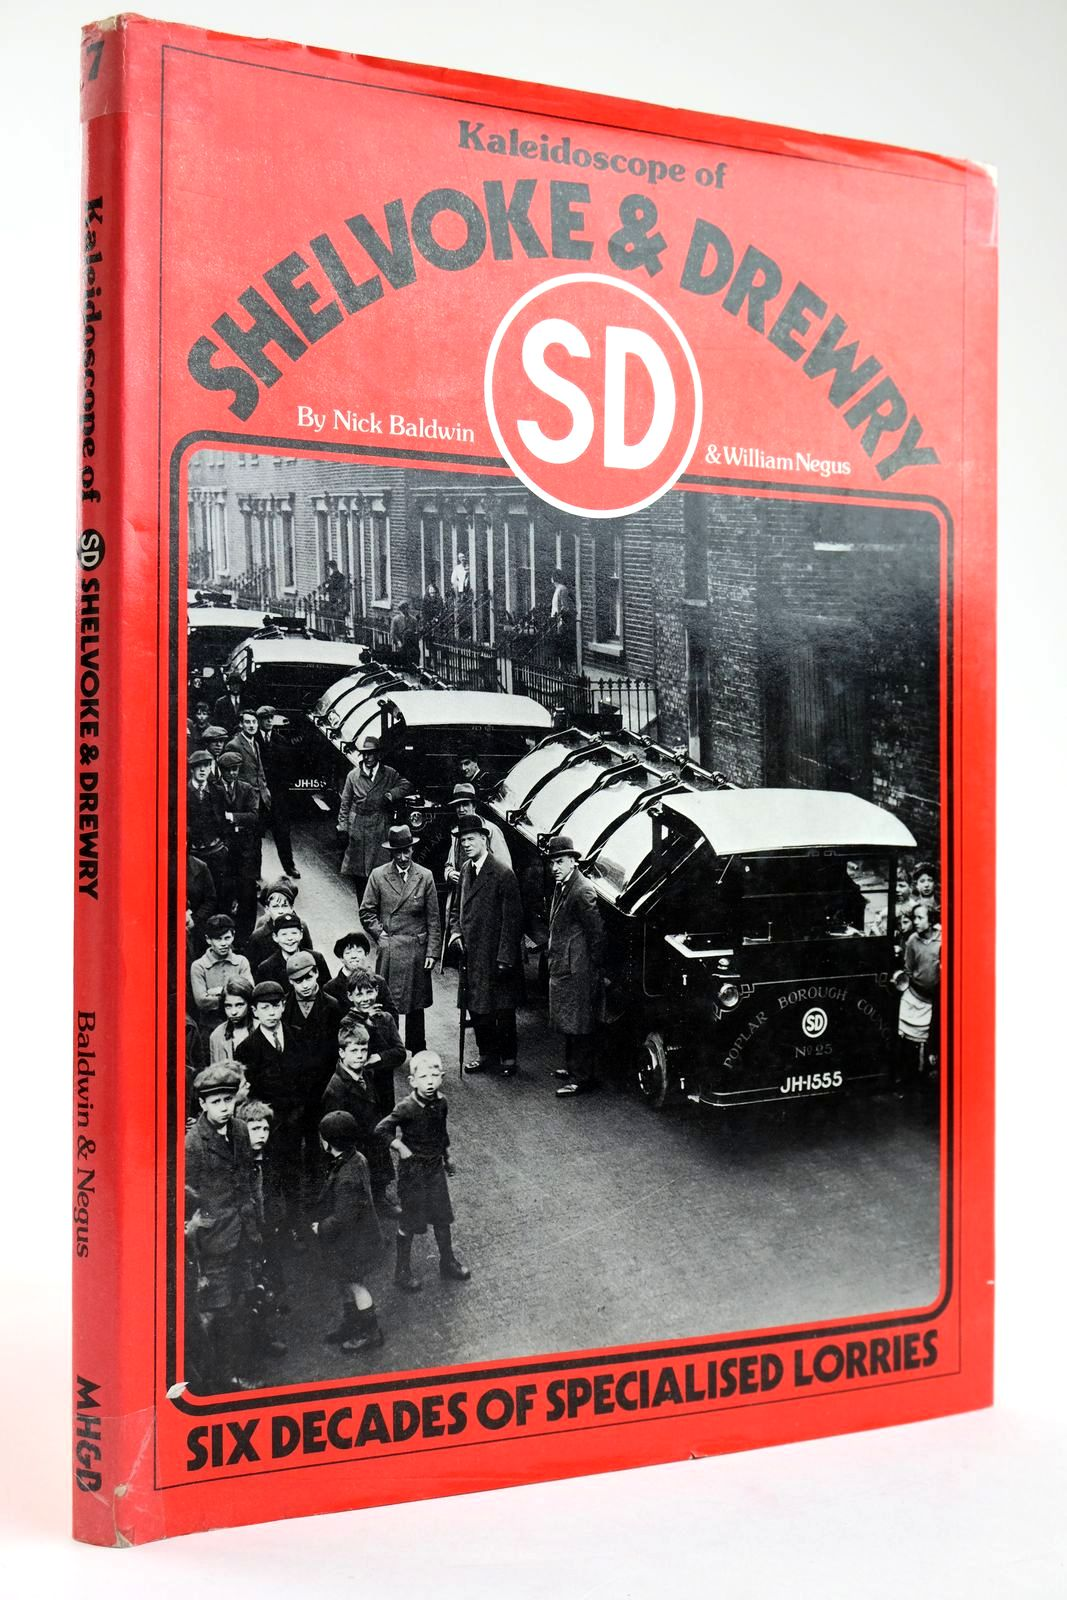 Photo of A KALEIDOSCOPE OF SHELVOKE & DREWRY written by Baldwin, Nick Negus, William published by Marshall Harris & Baldwin Ltd. (STOCK CODE: 2133551)  for sale by Stella & Rose's Books